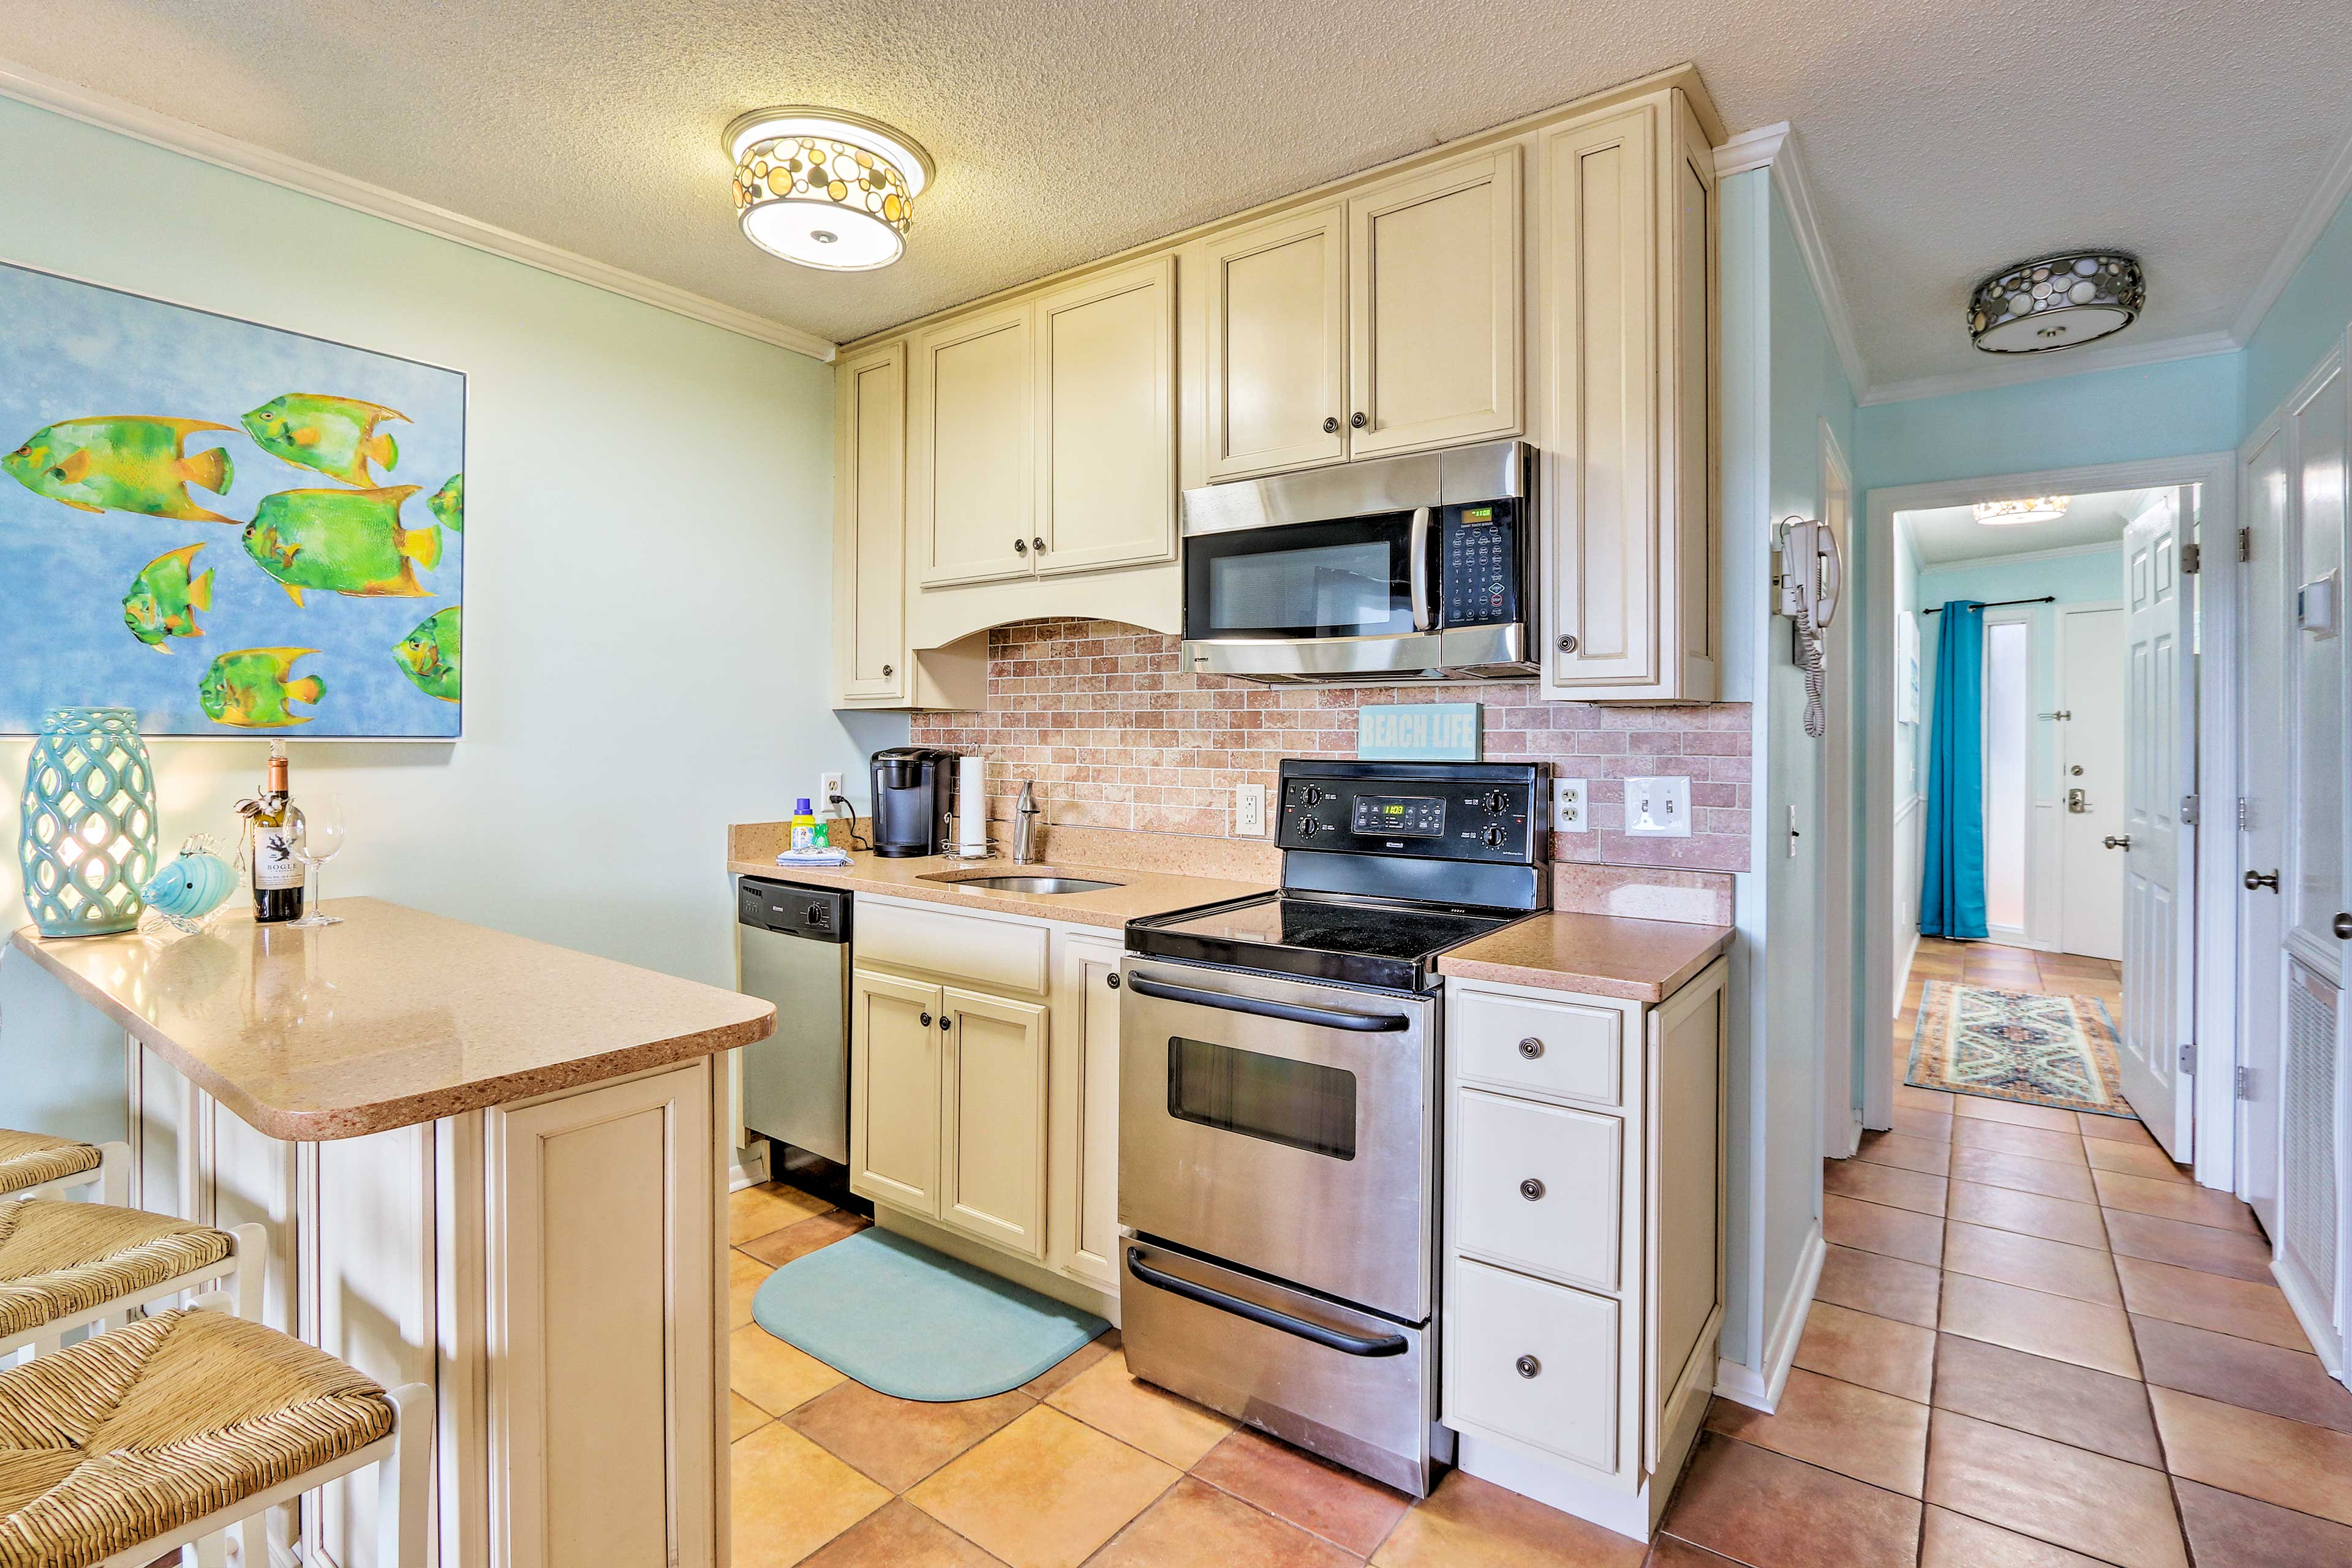 Prepare Lowcountry cuisine with ease in the fully equipped kitchen.